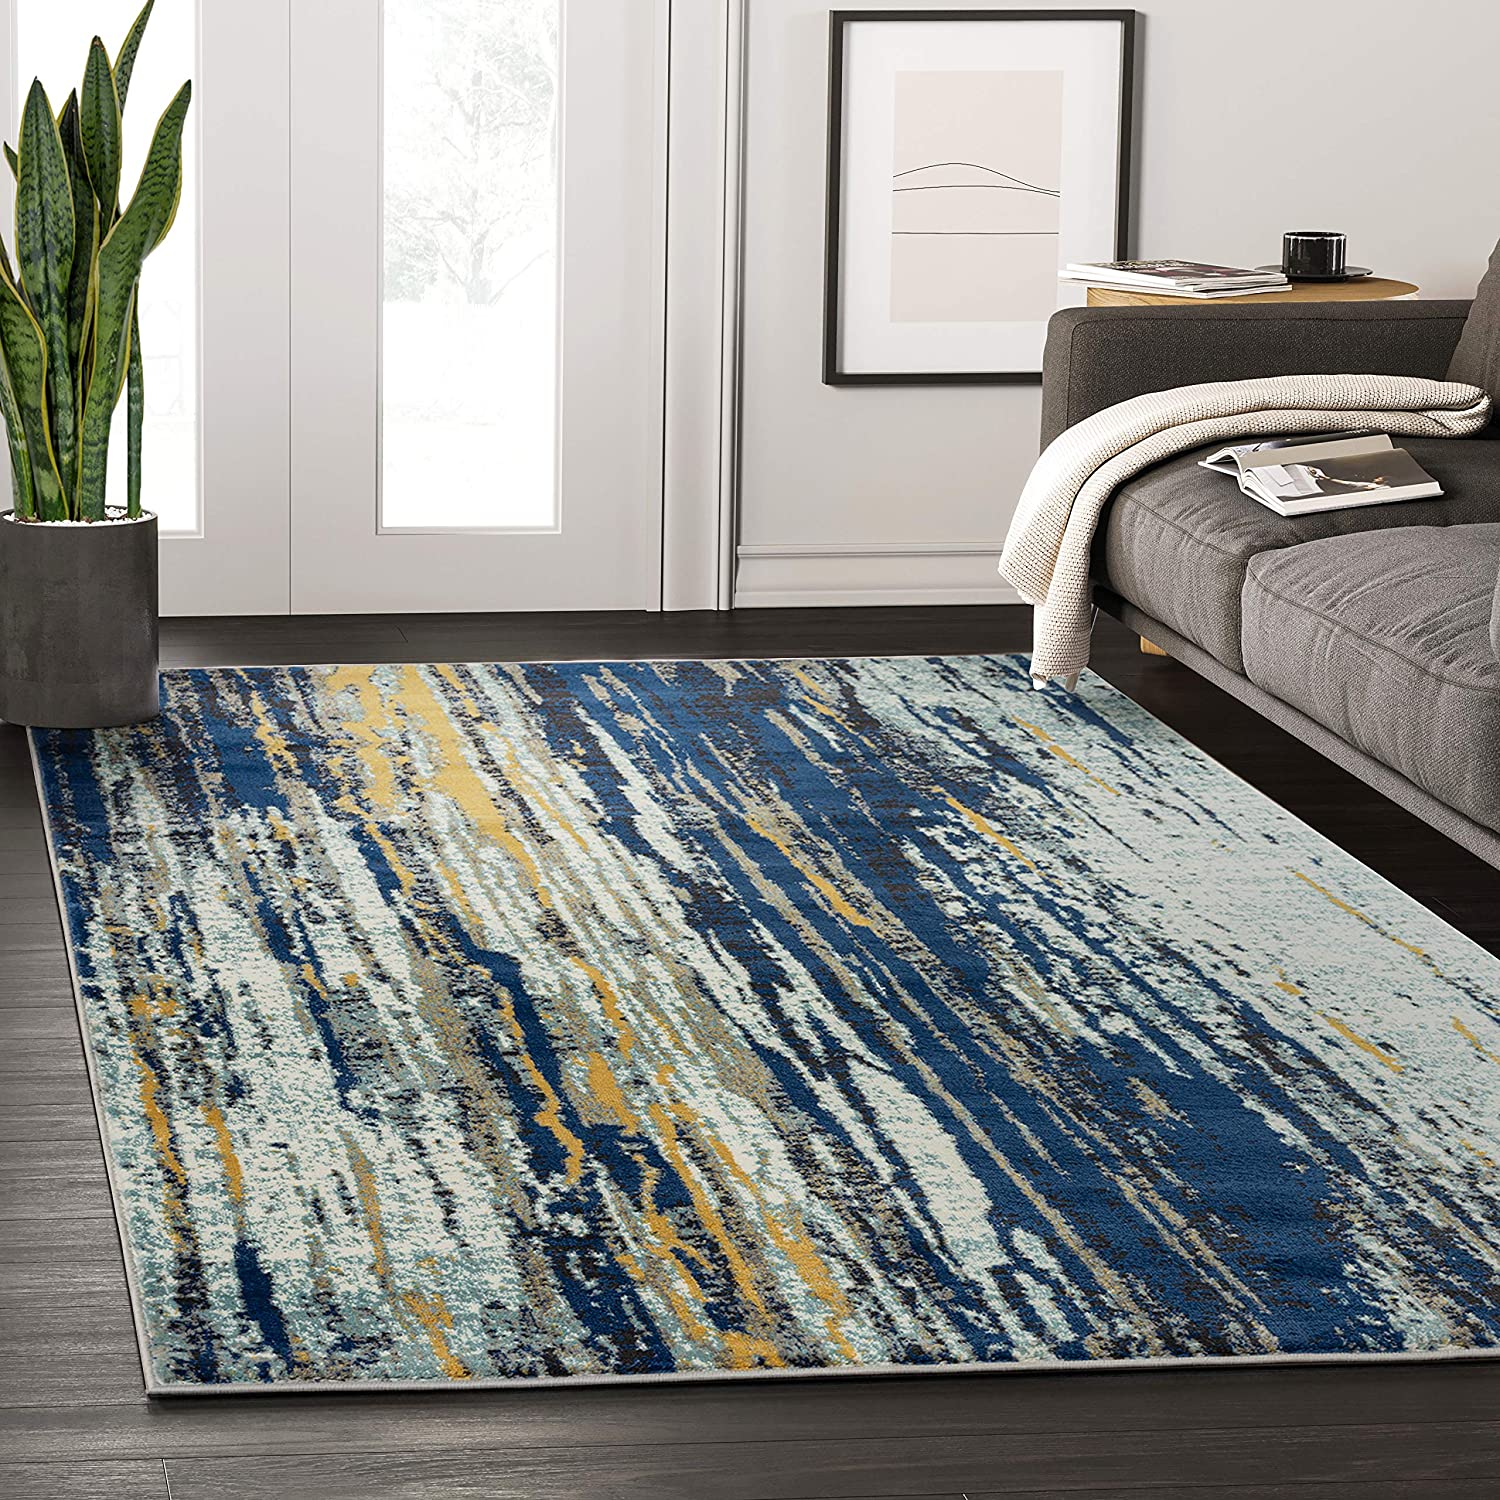 Abani Rugs Blue Yellow Painted Pattern Area Large quality assurance discharge sale Design Rug Bold w